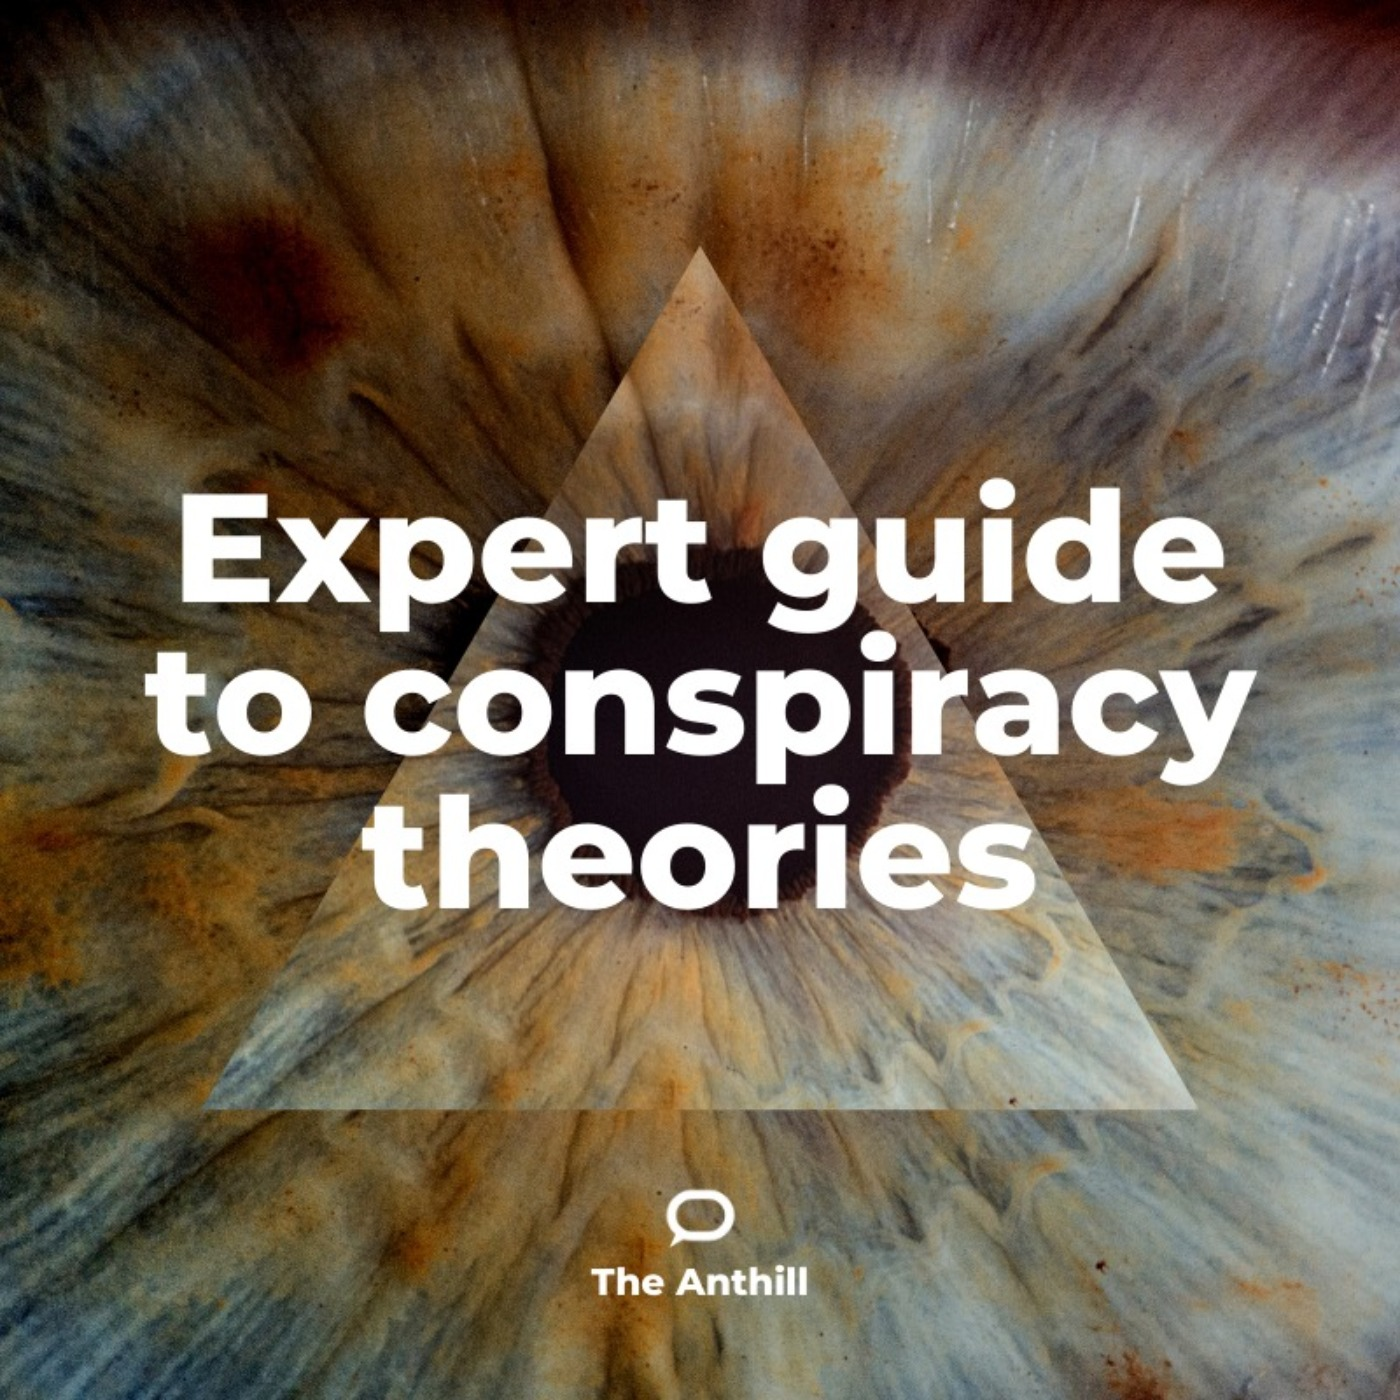 Expert guide to conspiracy theories part 2 – who believes them and why?